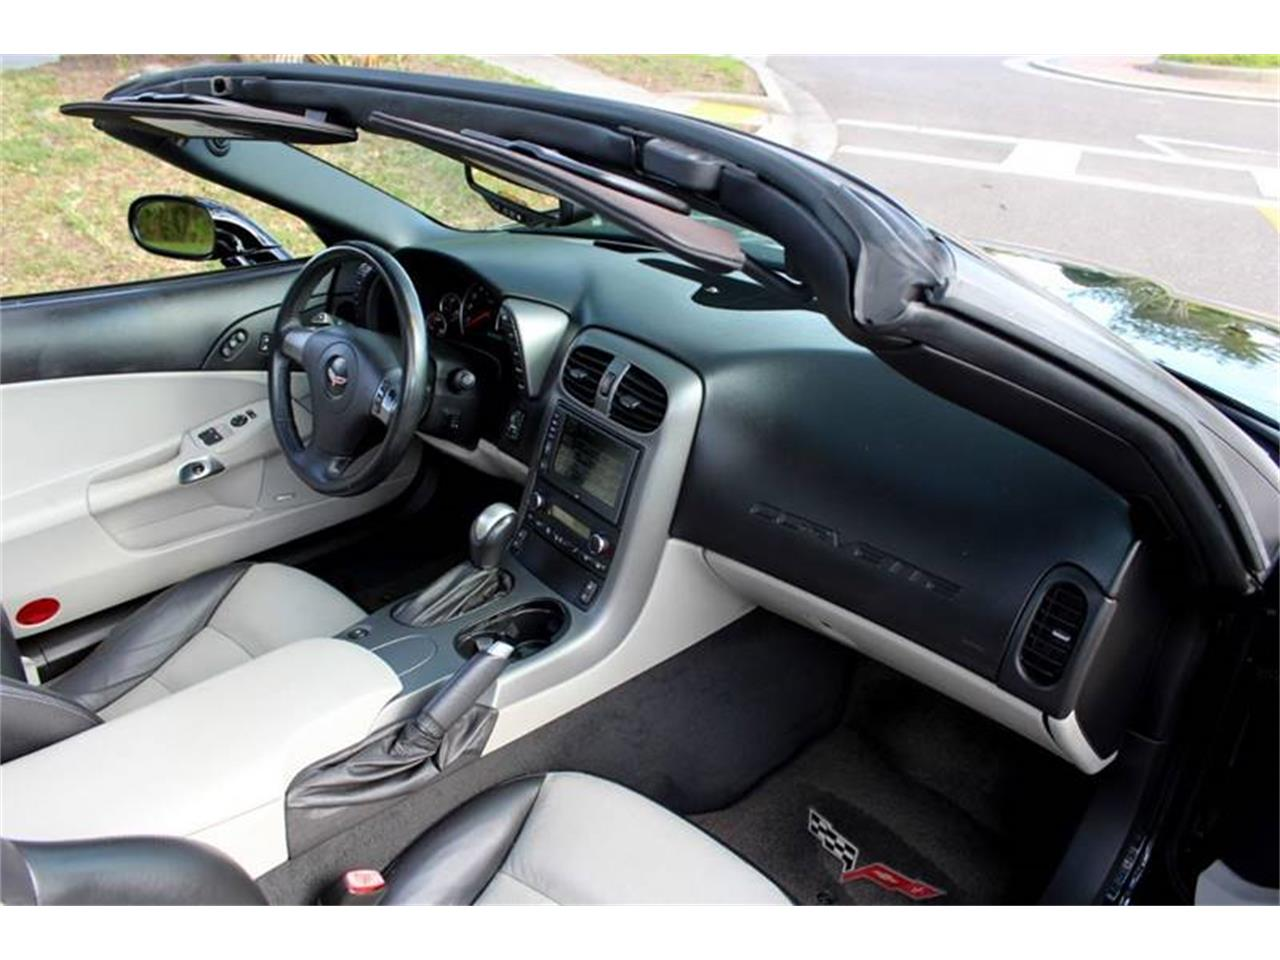 Large Picture of 2007 Corvette located in Florida - $21,900.00 Offered by PJ's Auto World - Q12D